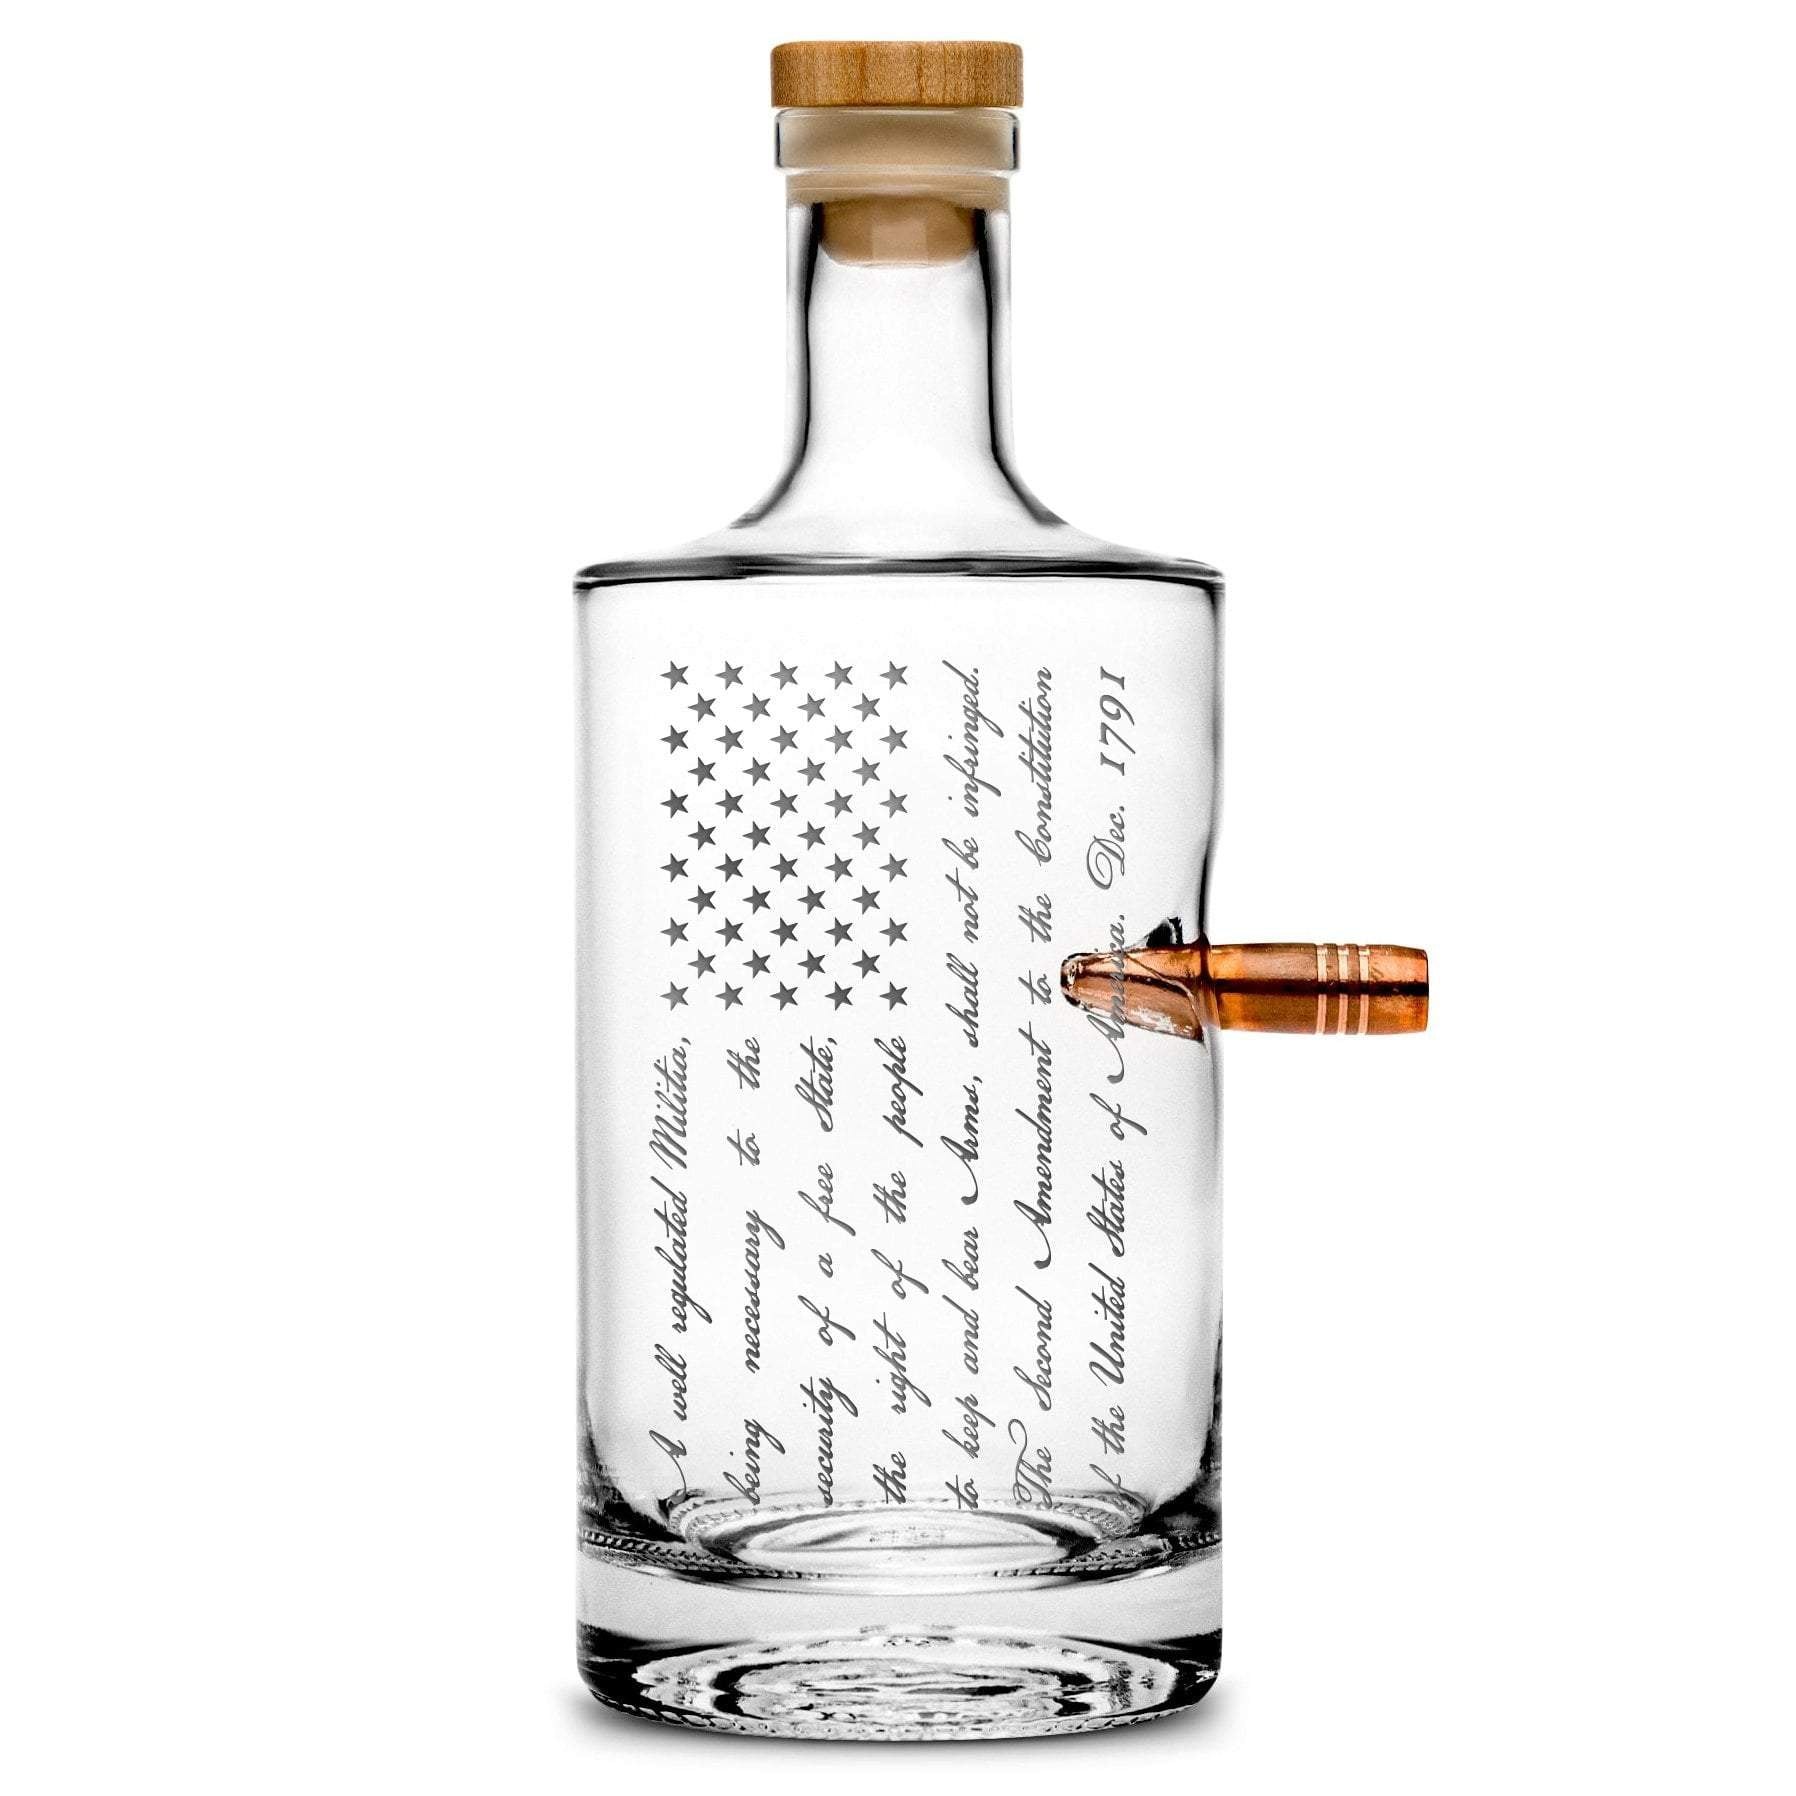 Silver Etch Premium .50 Cal BMG Bullet Bottle, Jersey Whiskey Decanter with Cork Stopper, 2nd Amendment American Flag, 750mL by Integrity Bottles